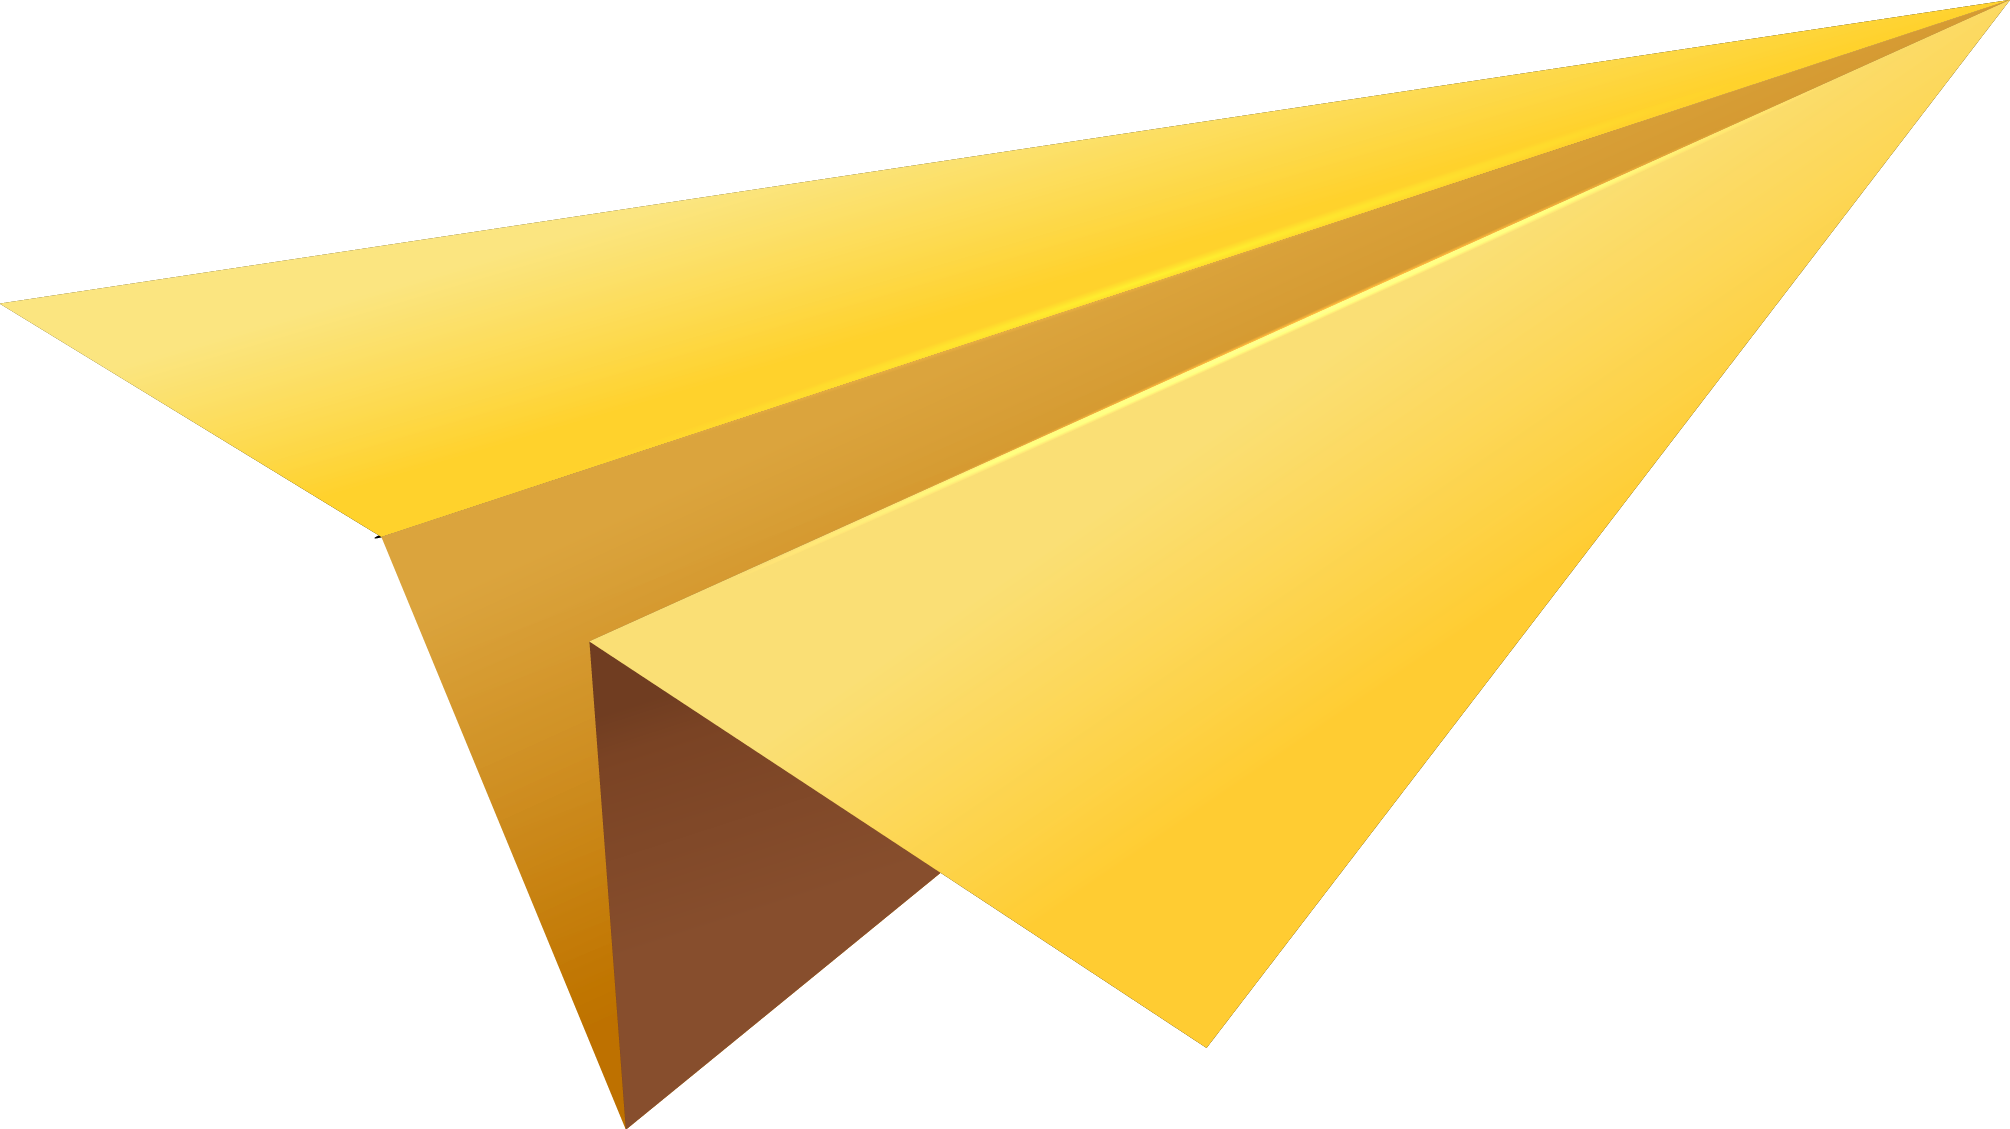 Paper airplane png. Yellow plane image purepng